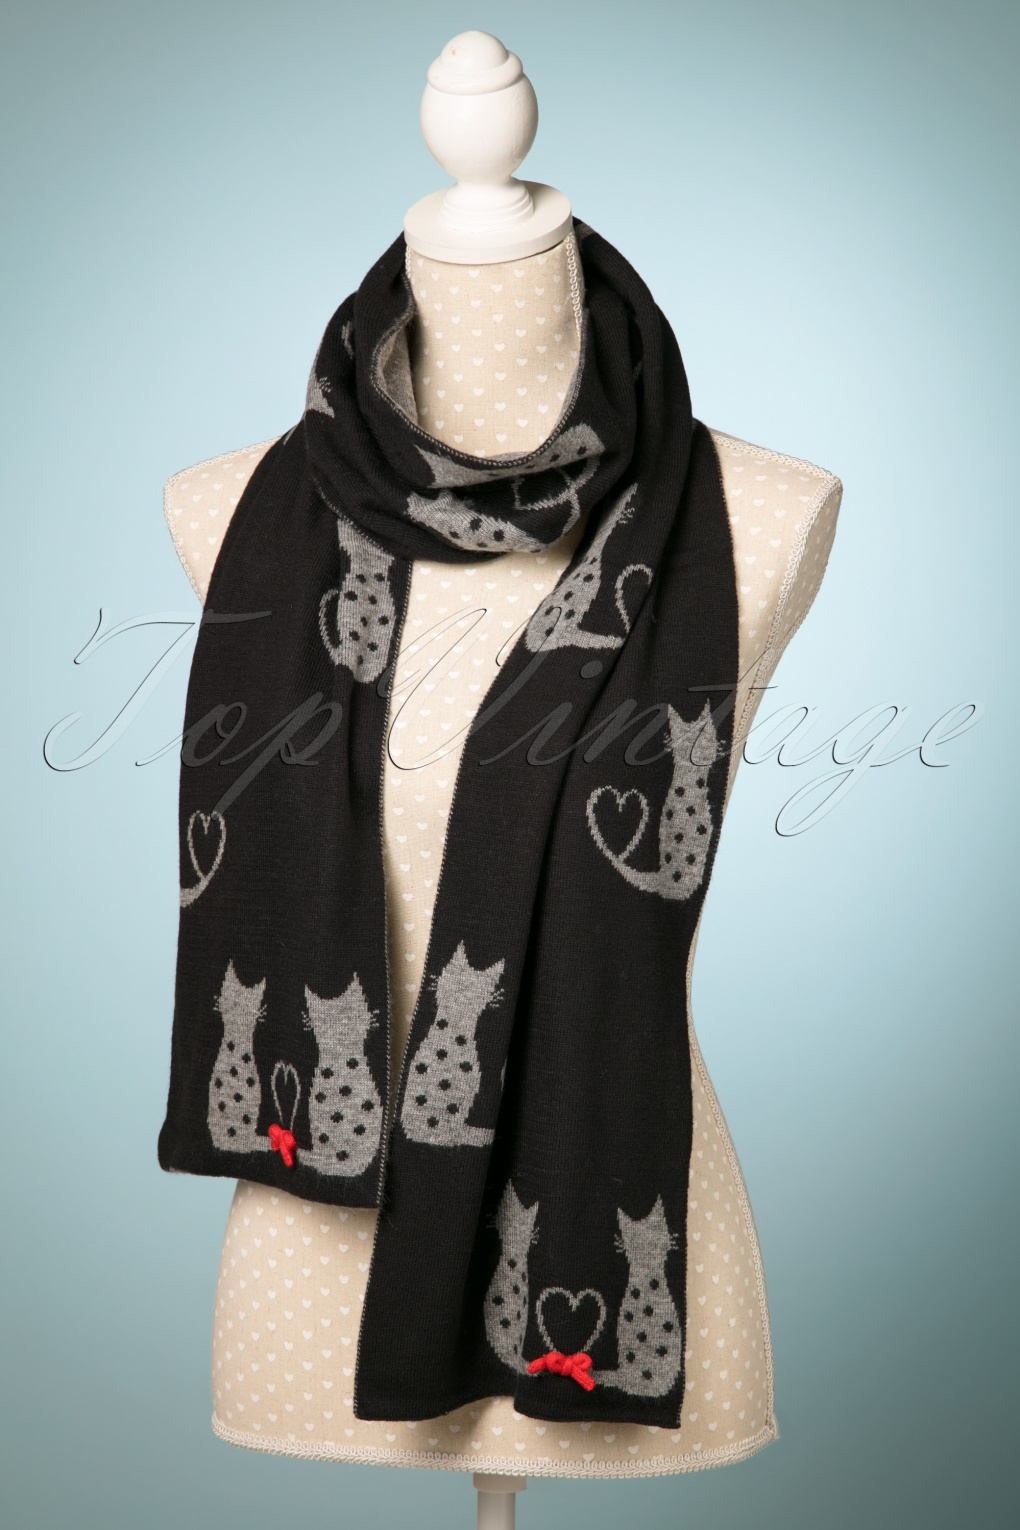 Vintage Scarf Styles -1920s to 1960s 60s Love Cats Jaquard Scarf in Black £24.88 AT vintagedancer.com